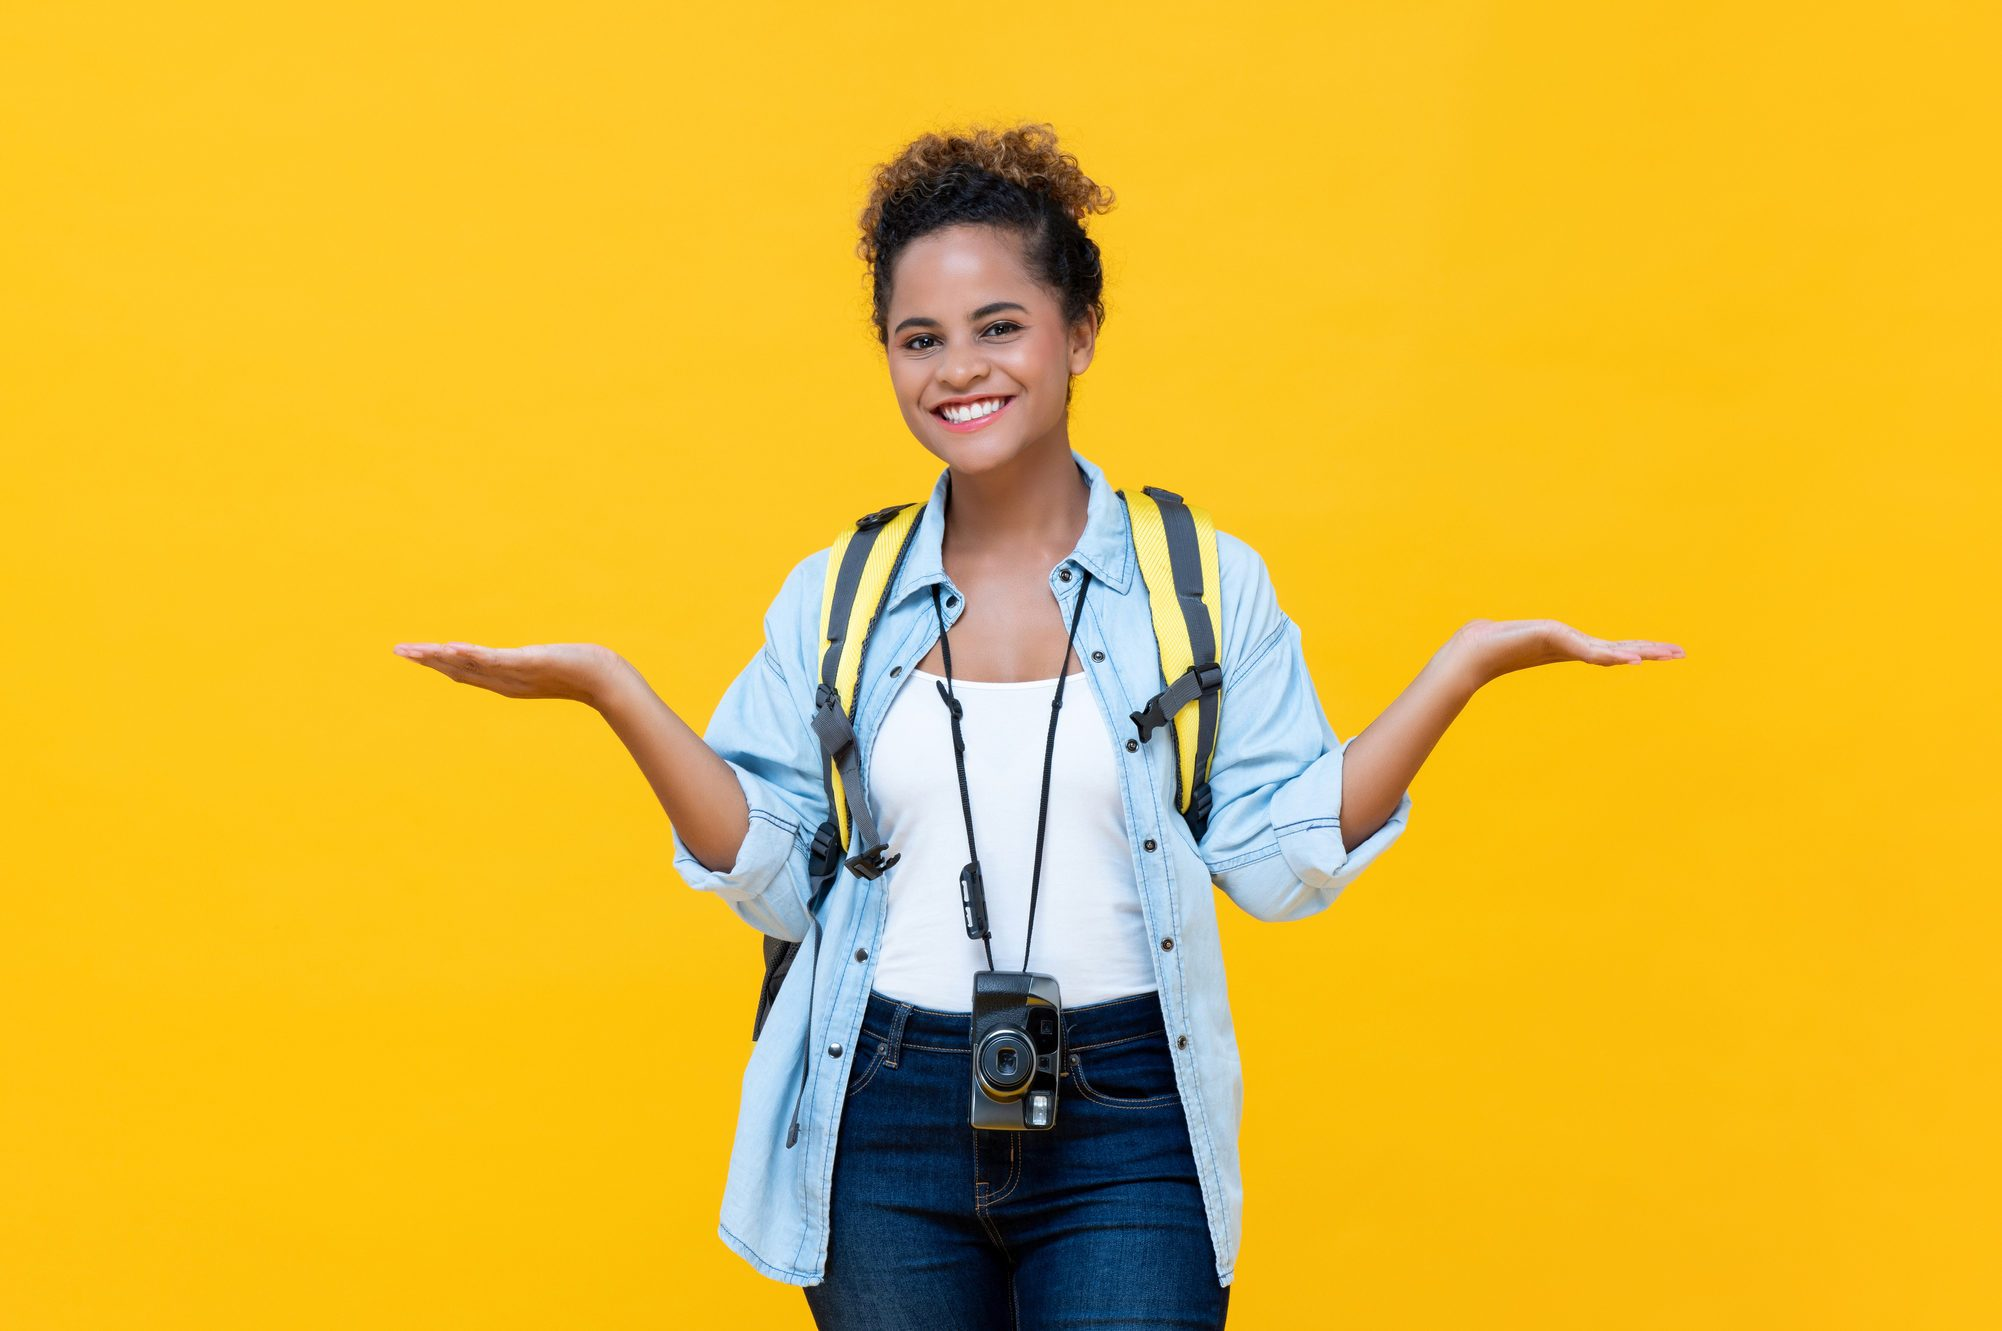 African American woman tourist doing no worry gesture